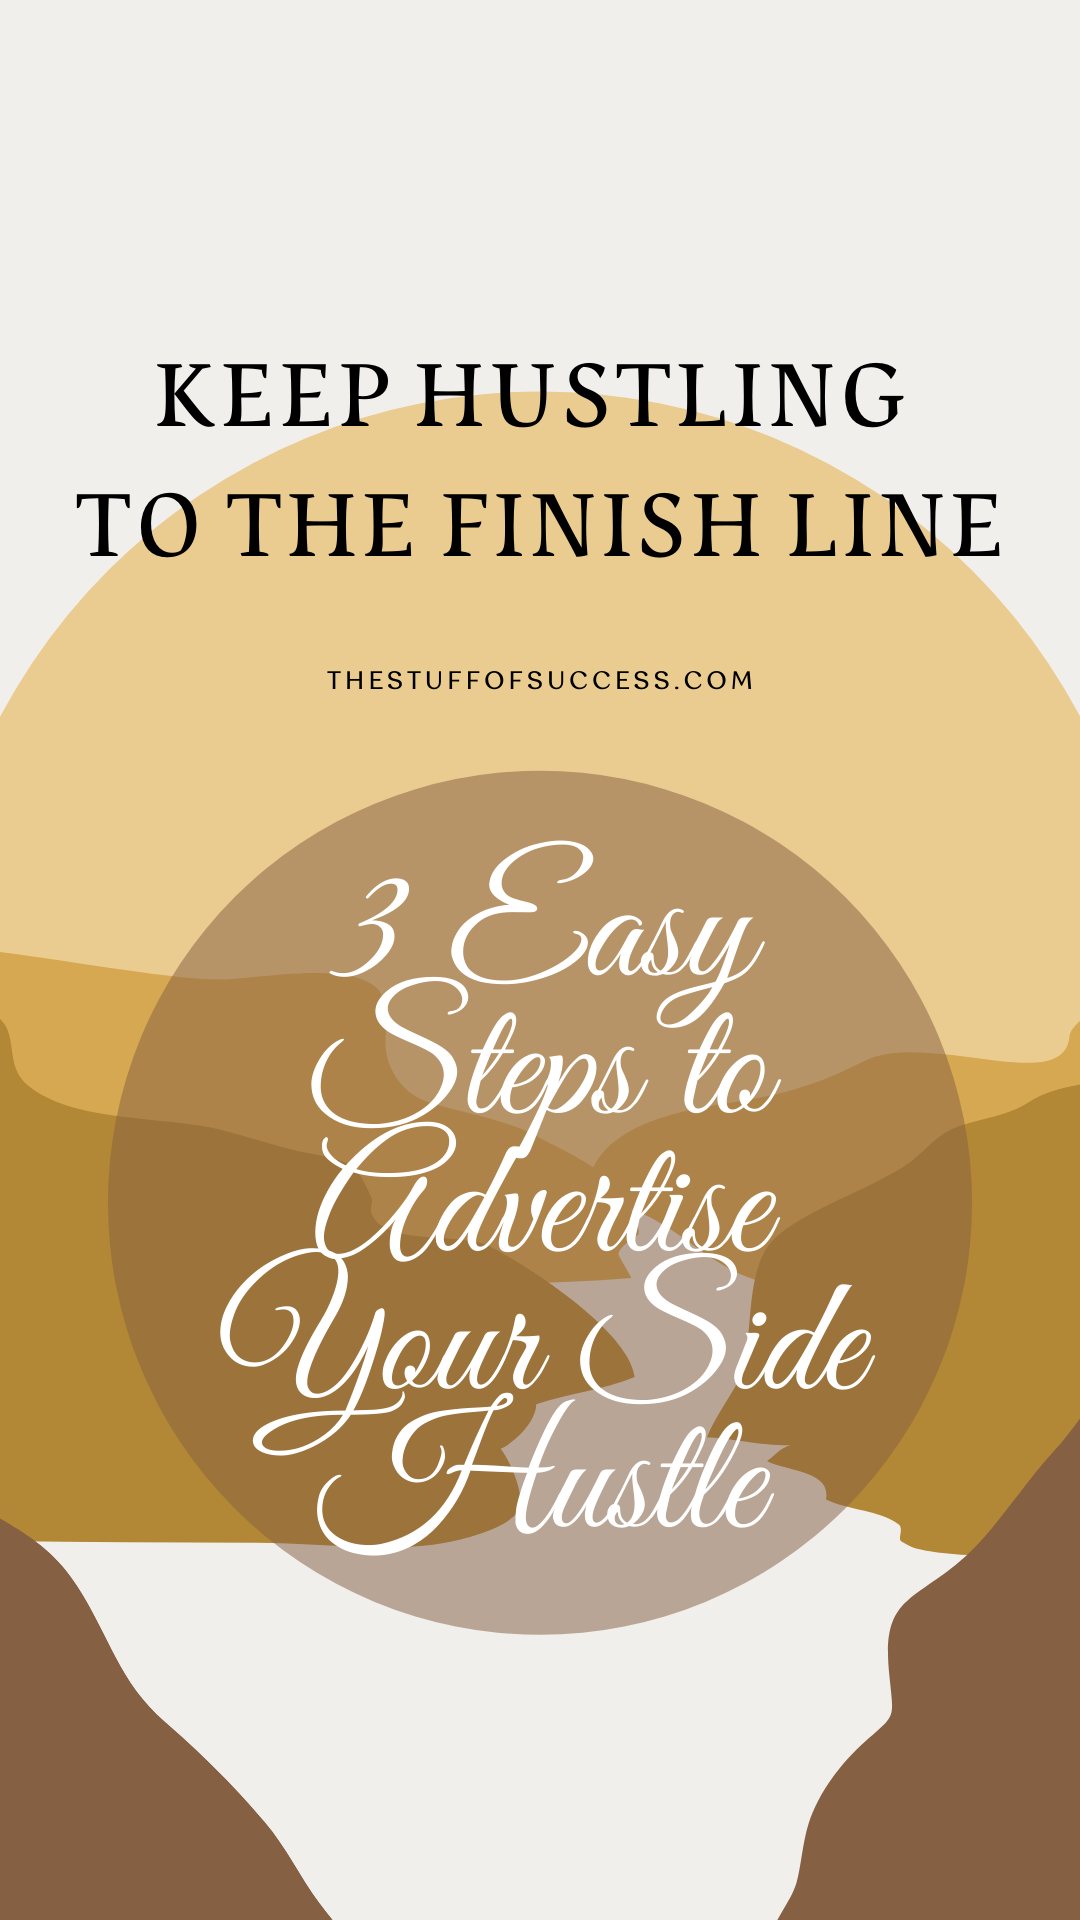 3 Easy Steps to Advertise Your Side Hustle